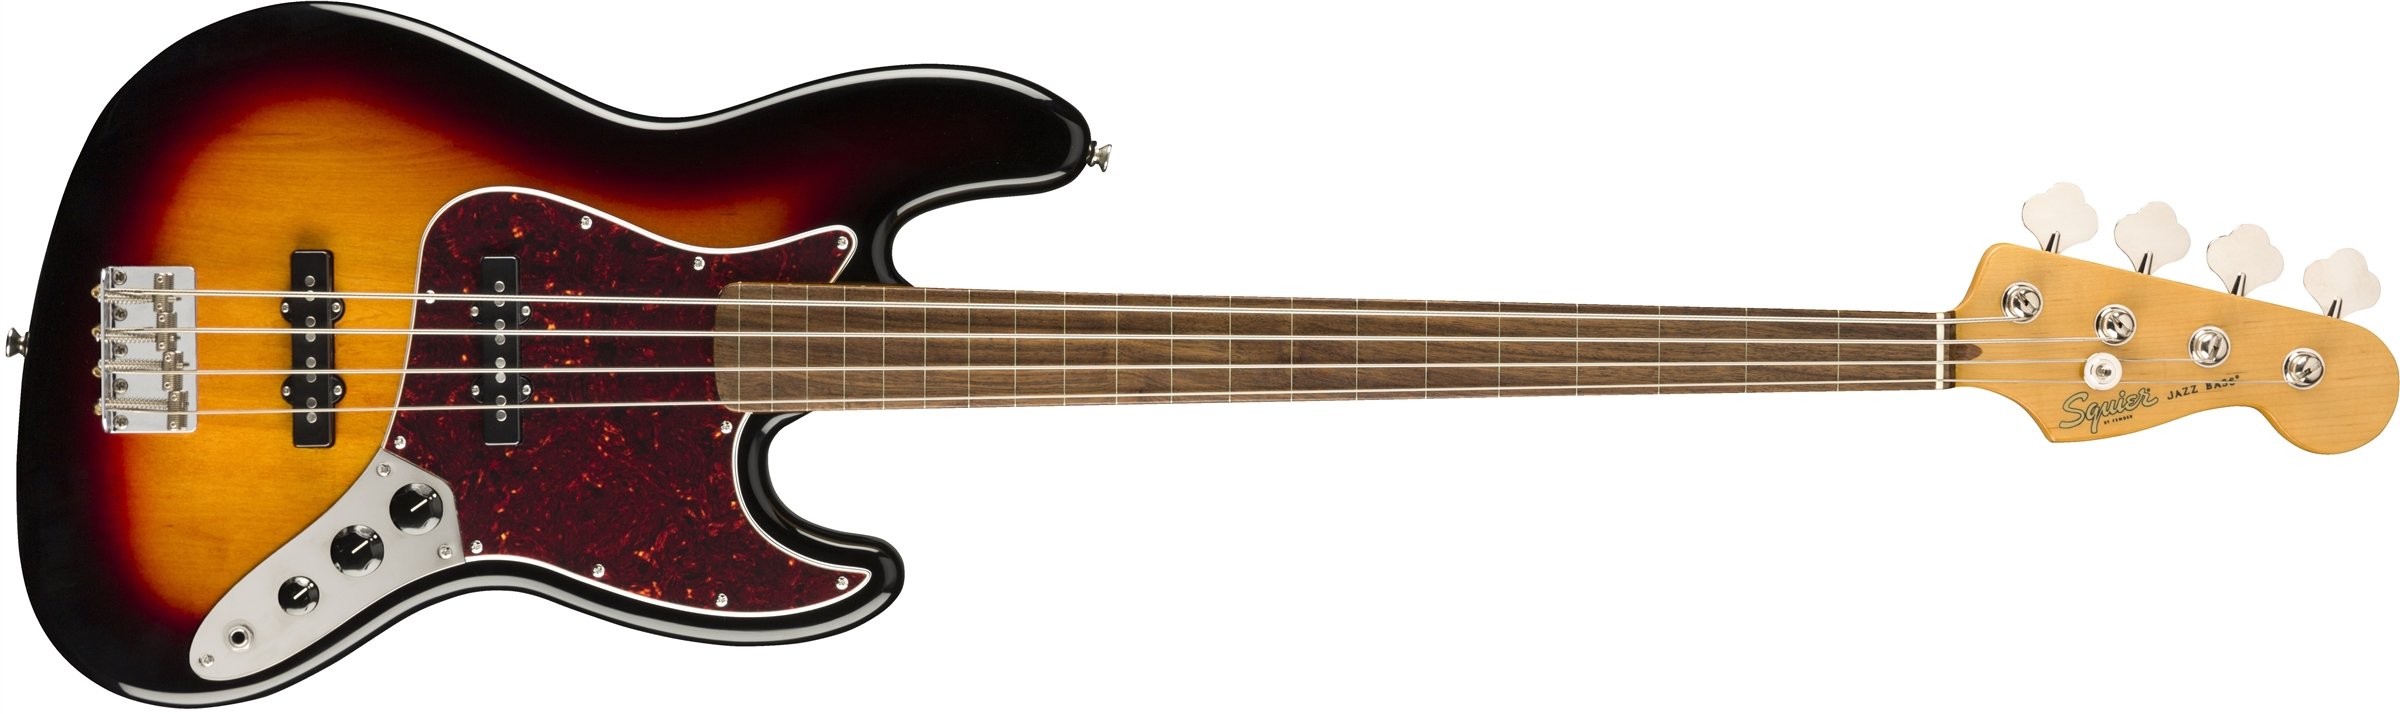 SQUIER Classic Vibe 60s Jazz Bass FR Fretless LF  3-Color Sunburst 0374531500